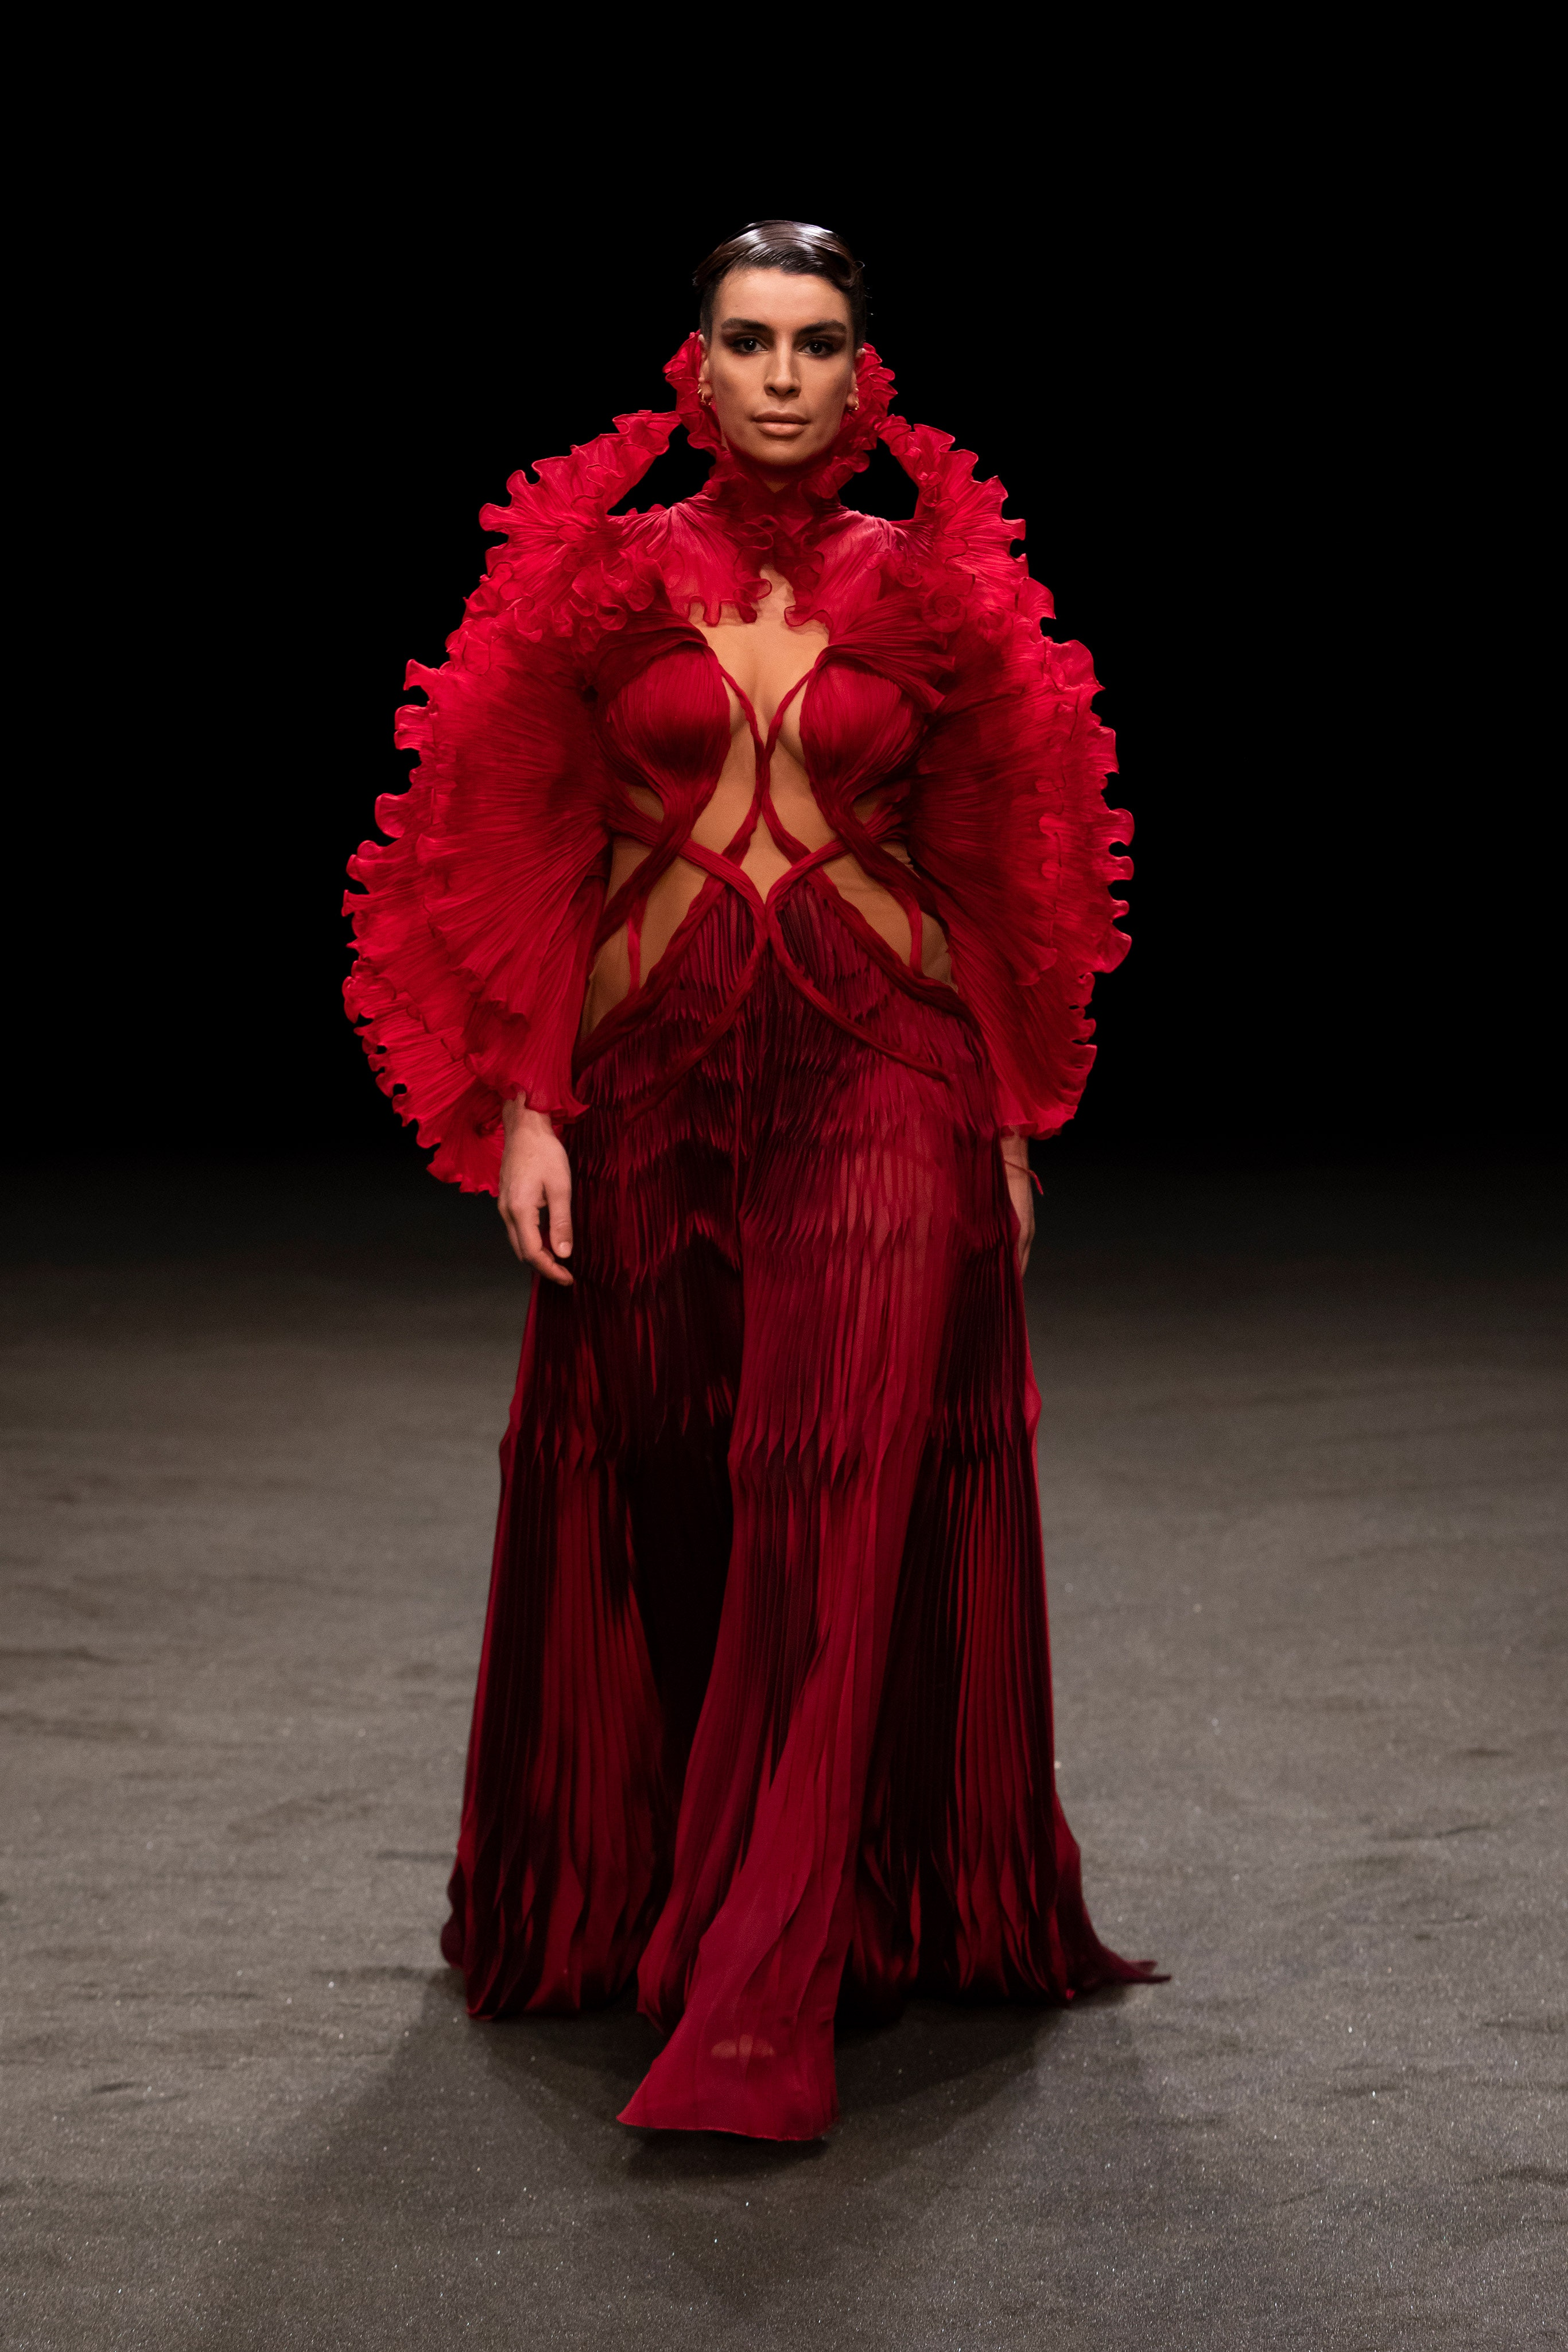 Iris van Herpen Spring 2021 Couture. A lady wearing a deep red gown with ruffles on the neck cascading down to the shoulders and arms.